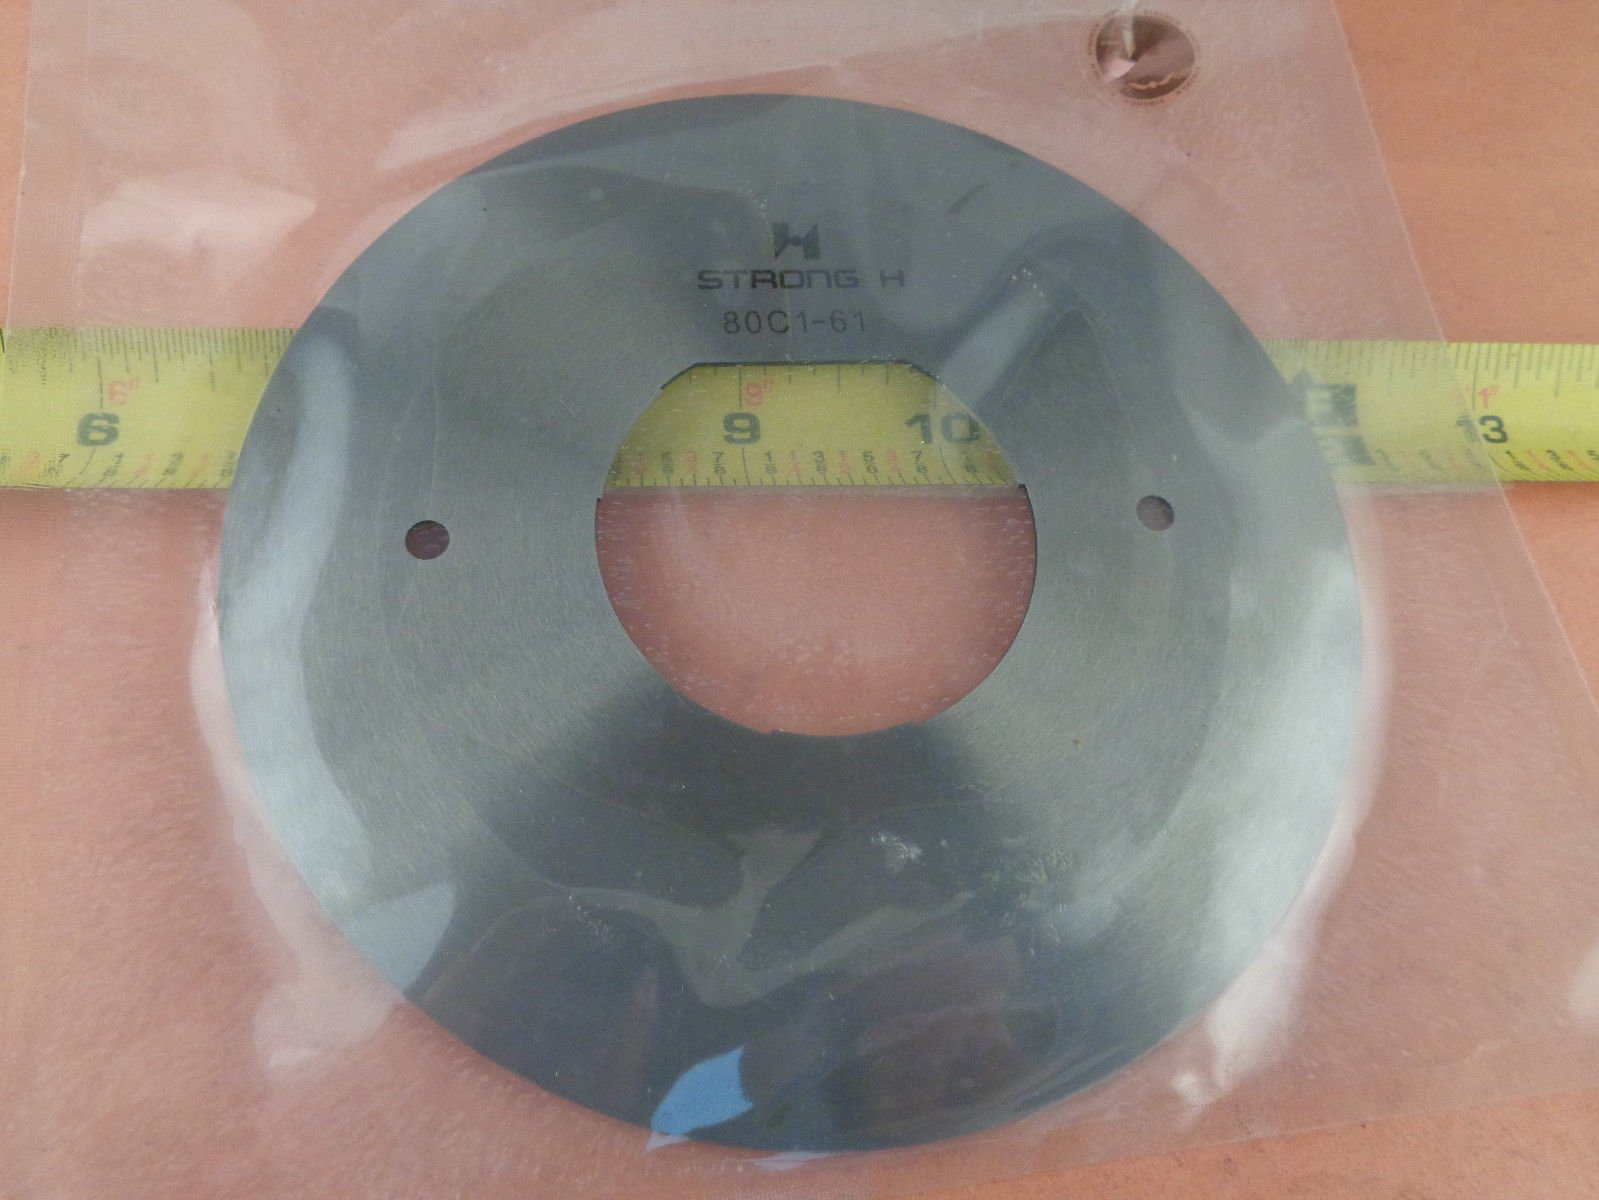 STRONGH 5-1/4'' ROUND BLADE KNIFE FOR EASTMAN CUTTING MACHINE R5-1/4E 80C1-61